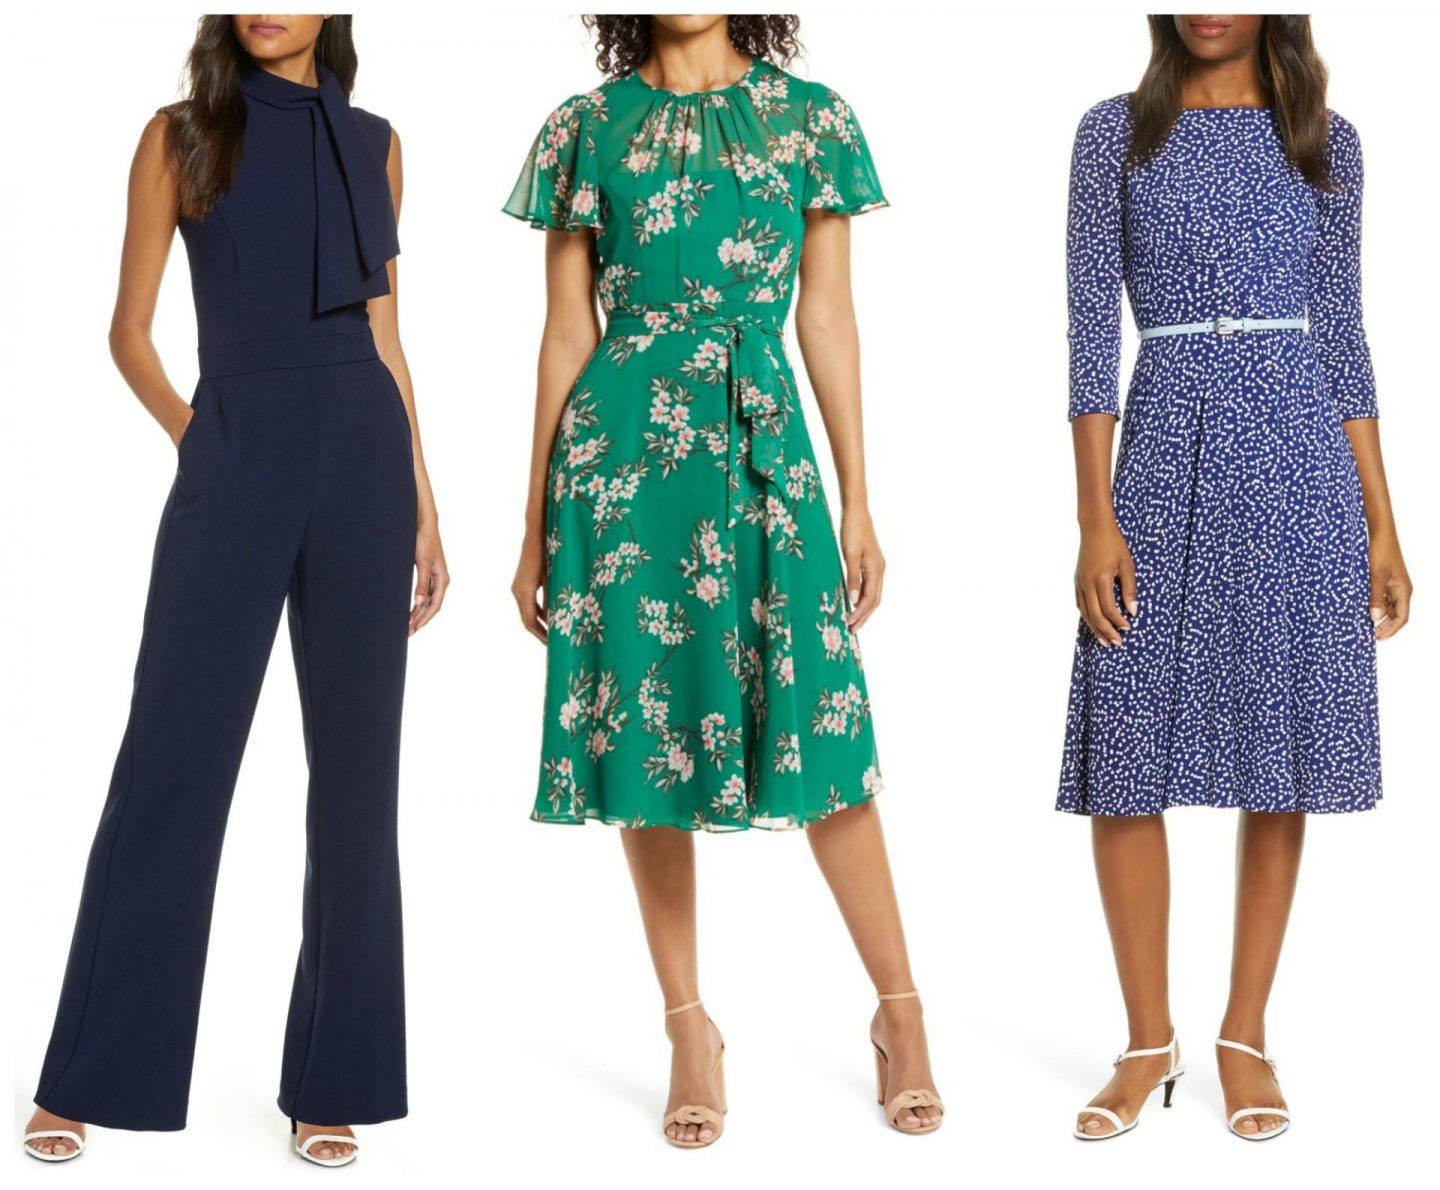 NC blogger Rebecca Lately shares are intentional Nordstrom Anniversary sale picks on her blog. Check out the items on her wish list!